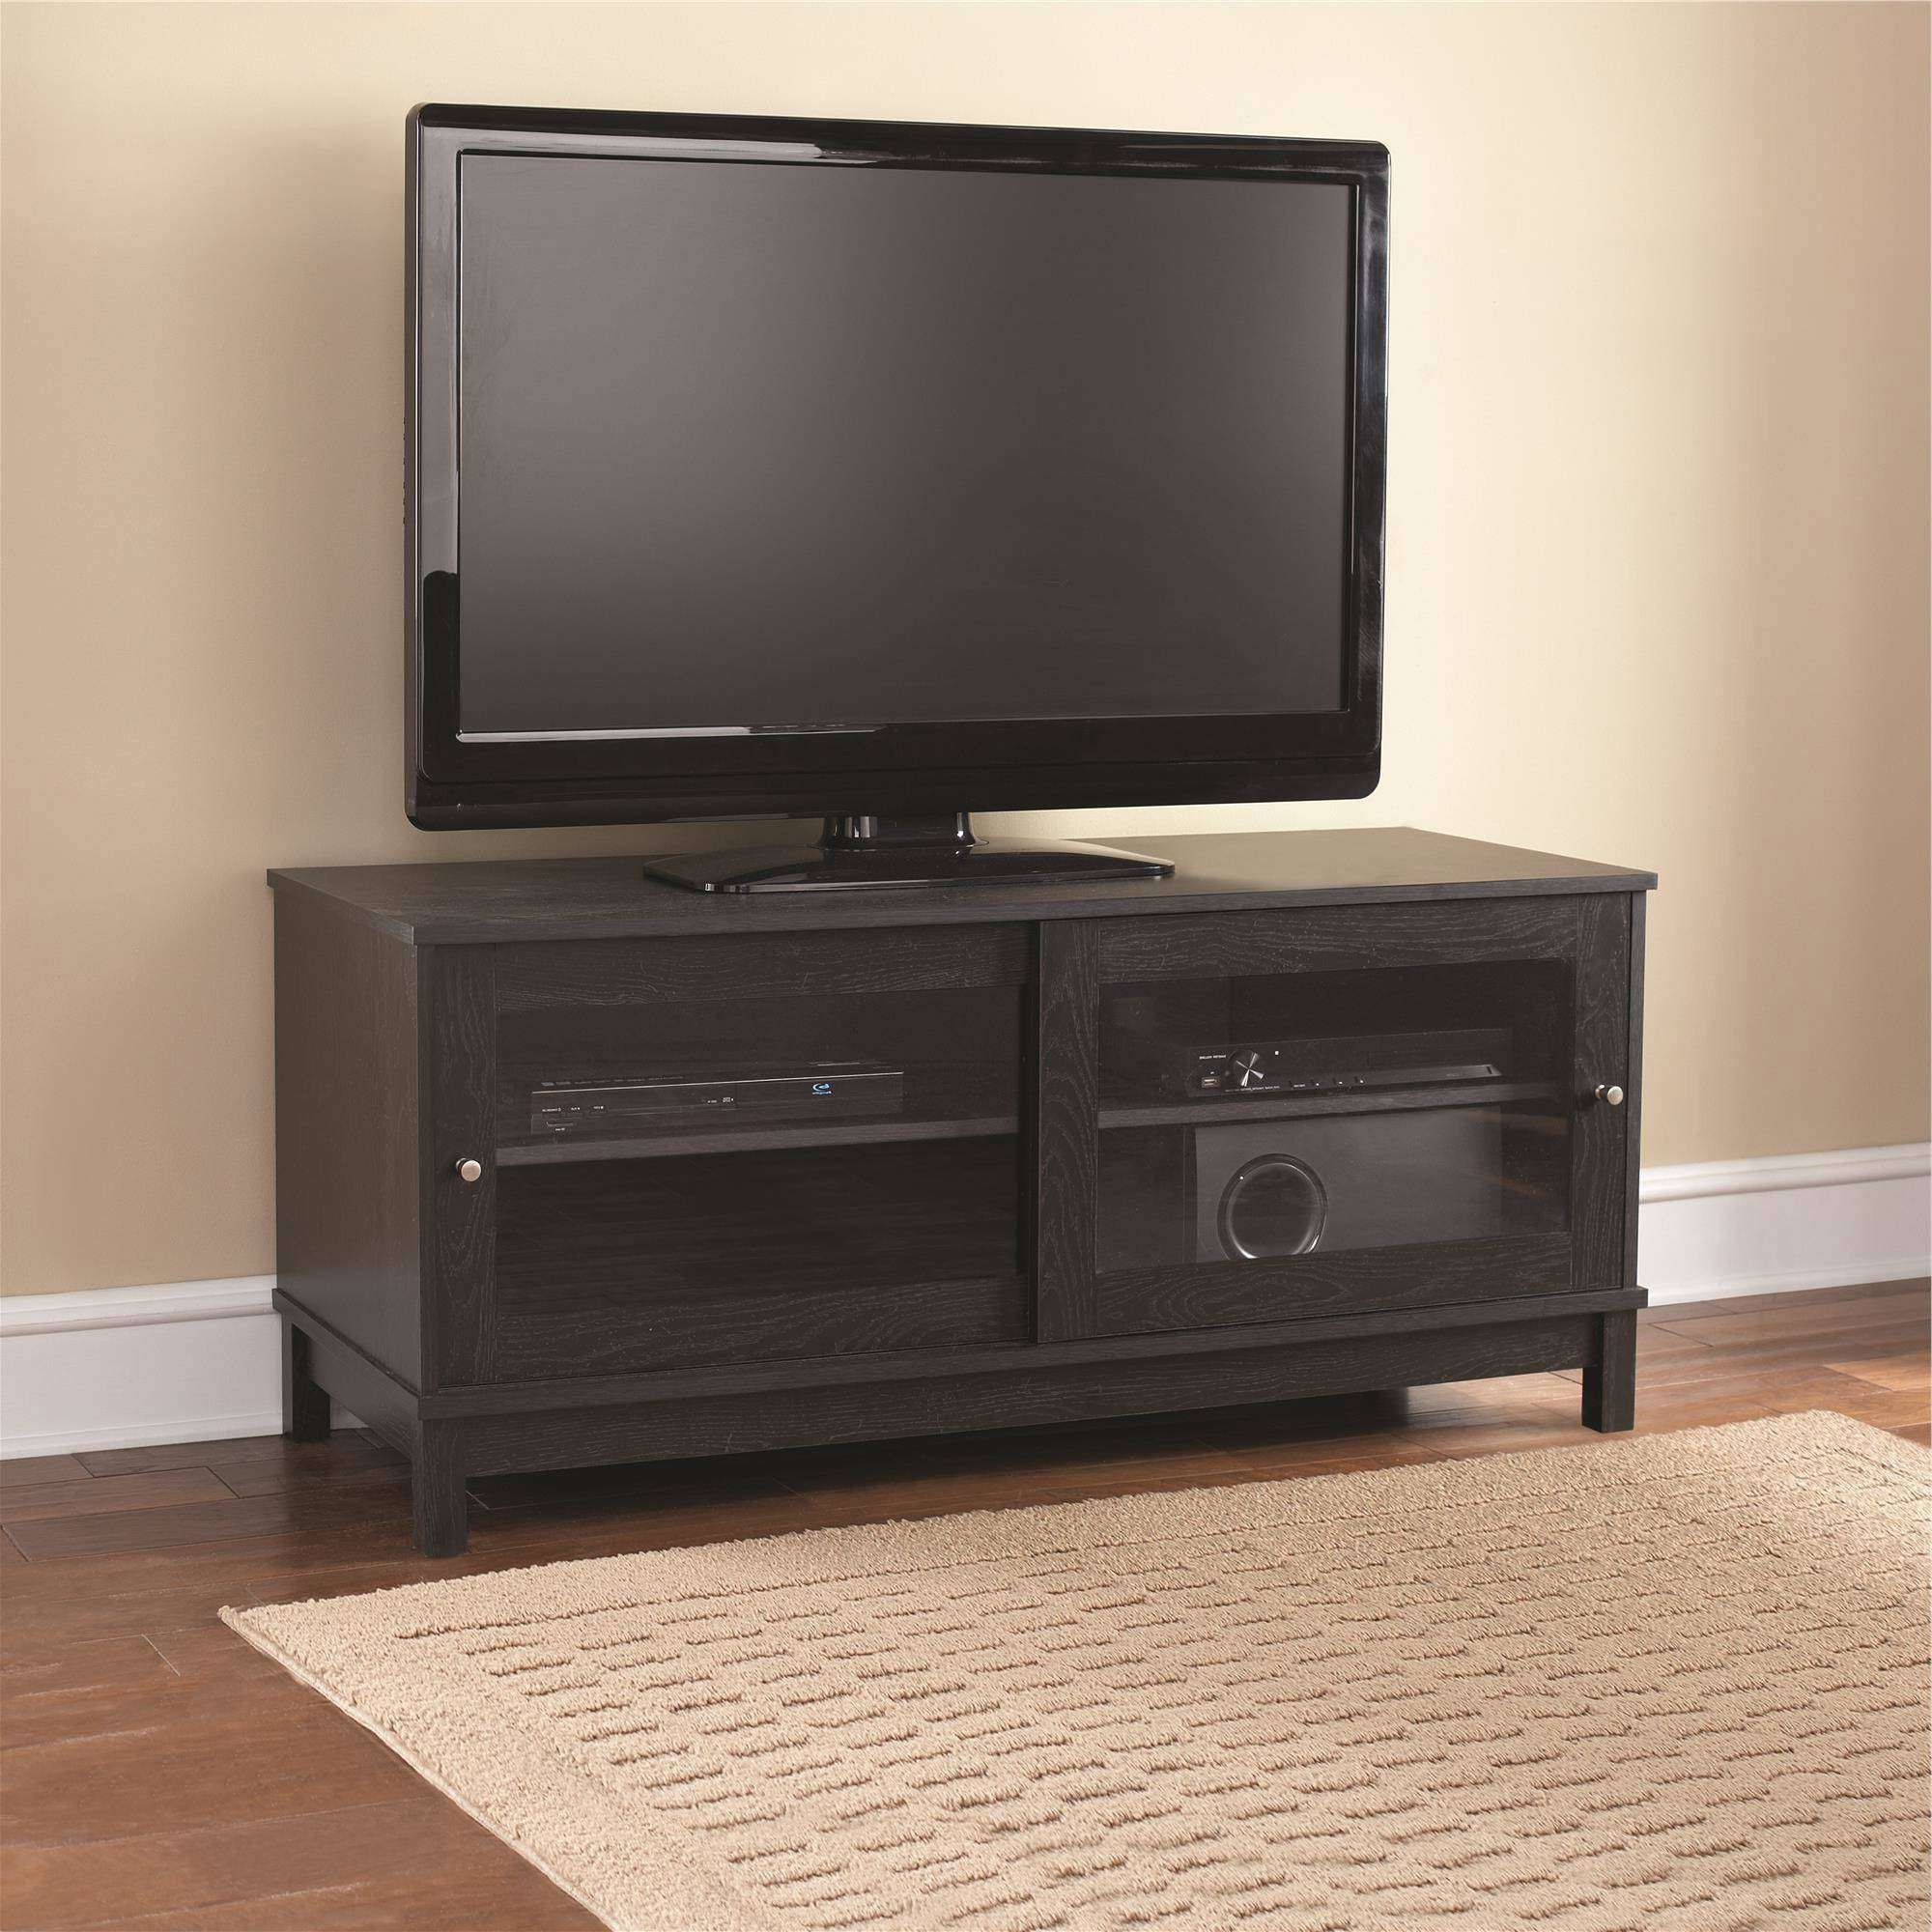 """Mainstays 55"""" Tv Stand With Sliding Glass Doors, Black Ebony Ash In Light Cherry Tv Stands (View 9 of 15)"""